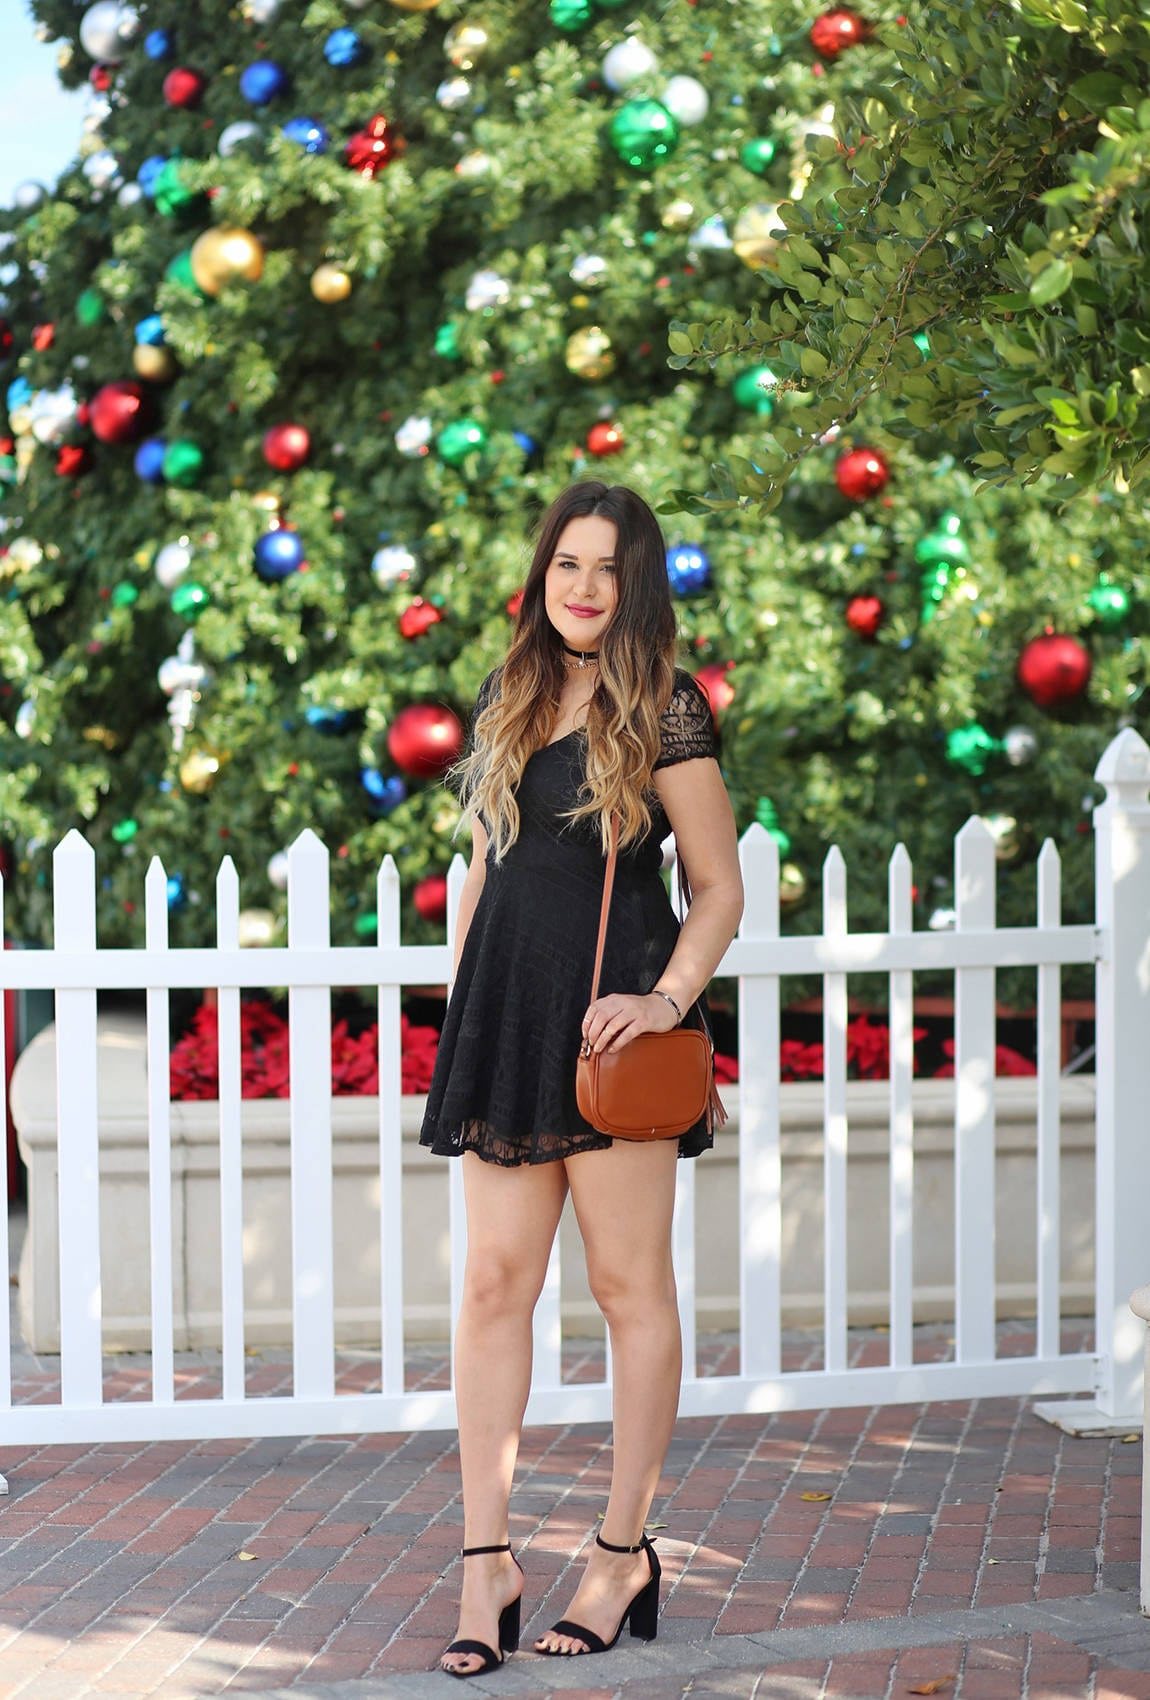 Christmas party ououtfit Mash Elle beauty blogger lace black dress black heels | little black dress | holiday outfit